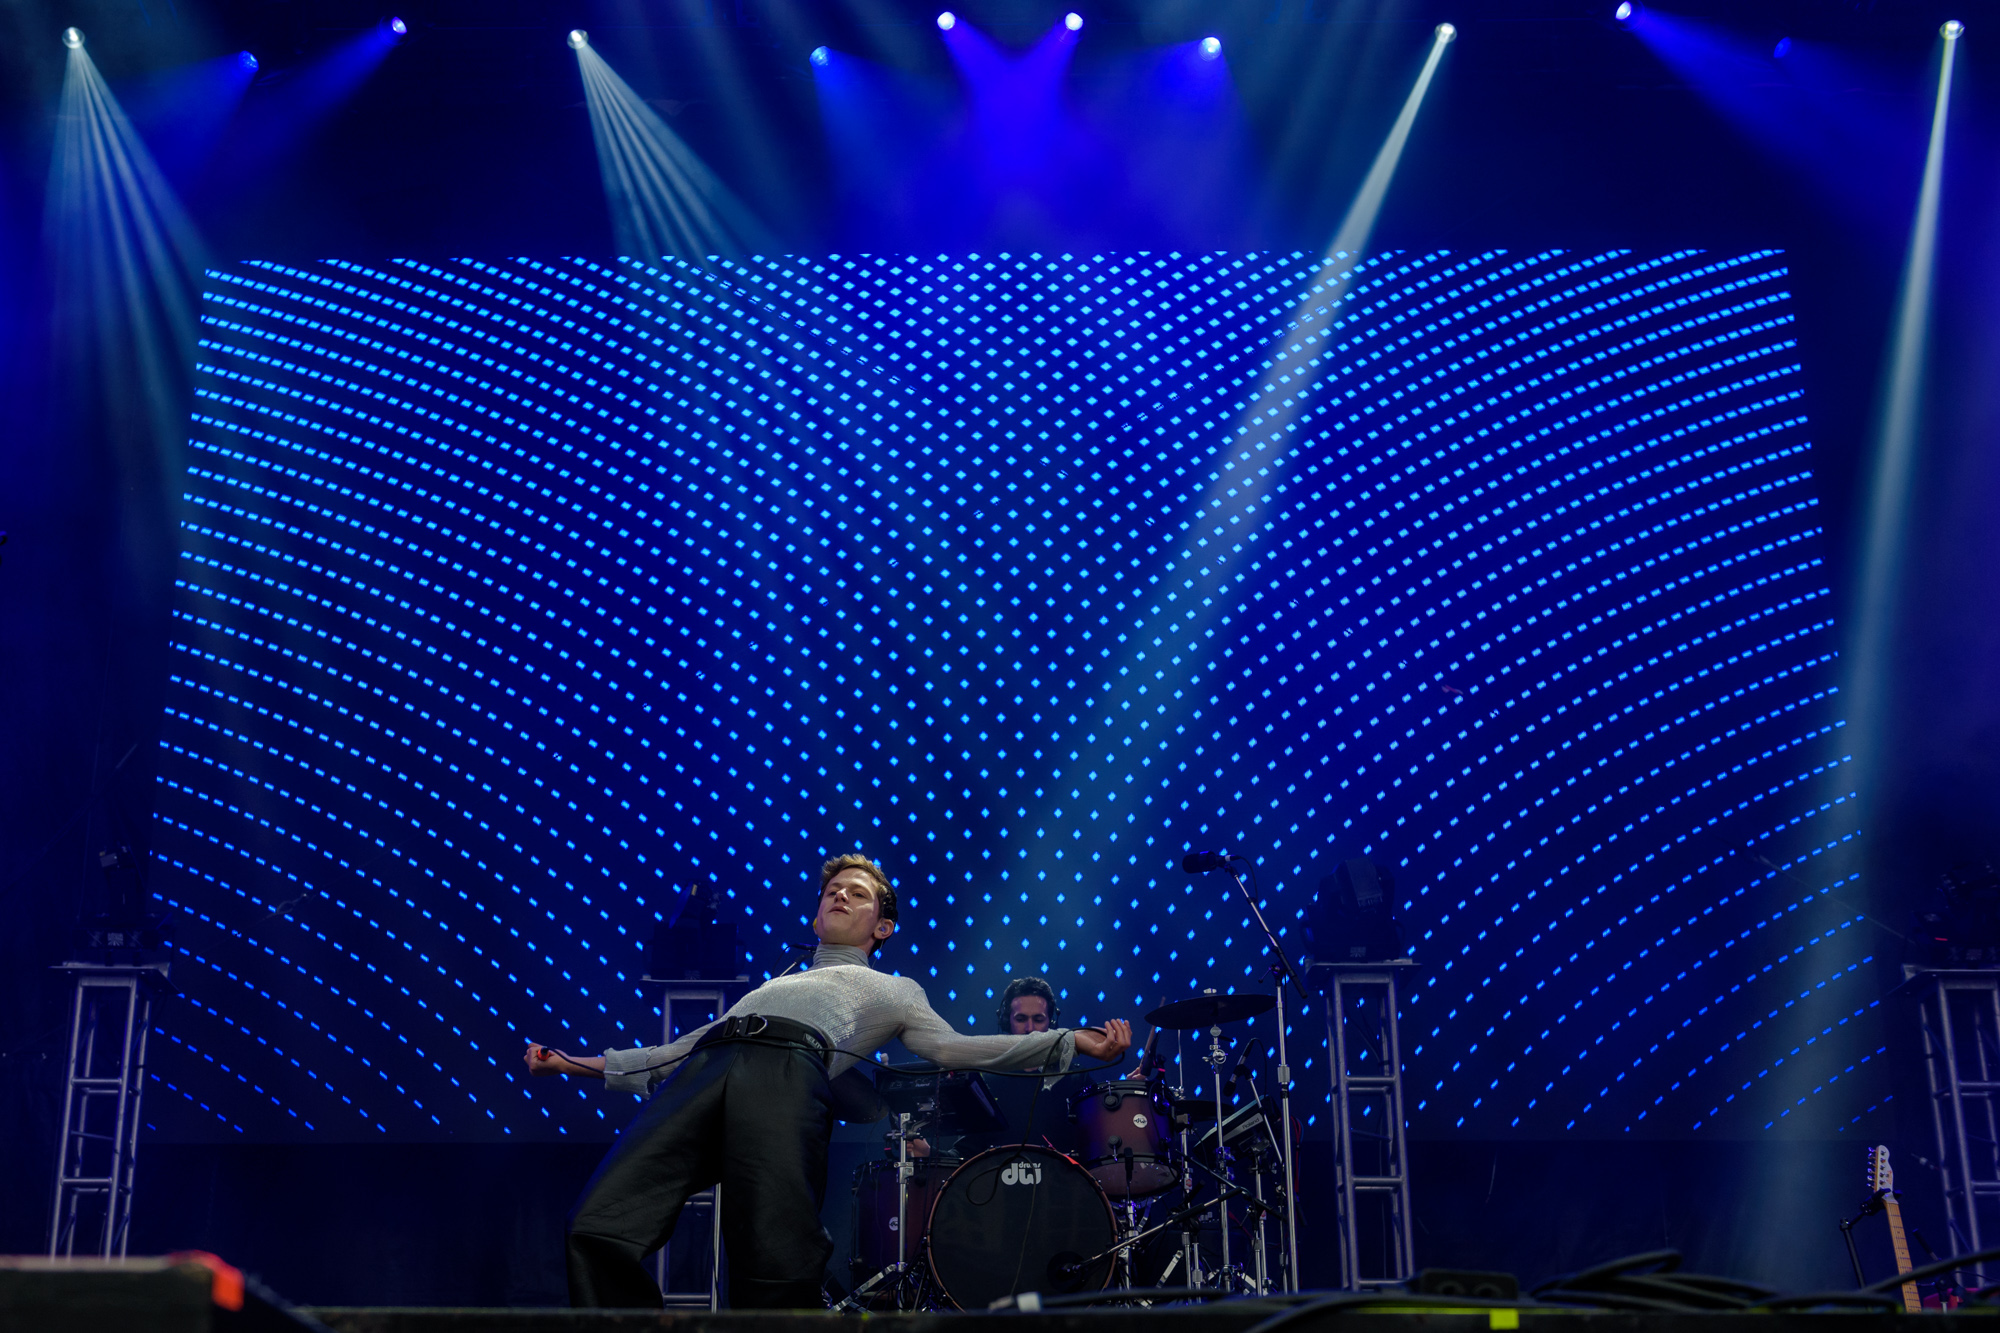 Perfume Genius performs during Day for Night Music and Art Festival, Houston, TX. December 16, 2017